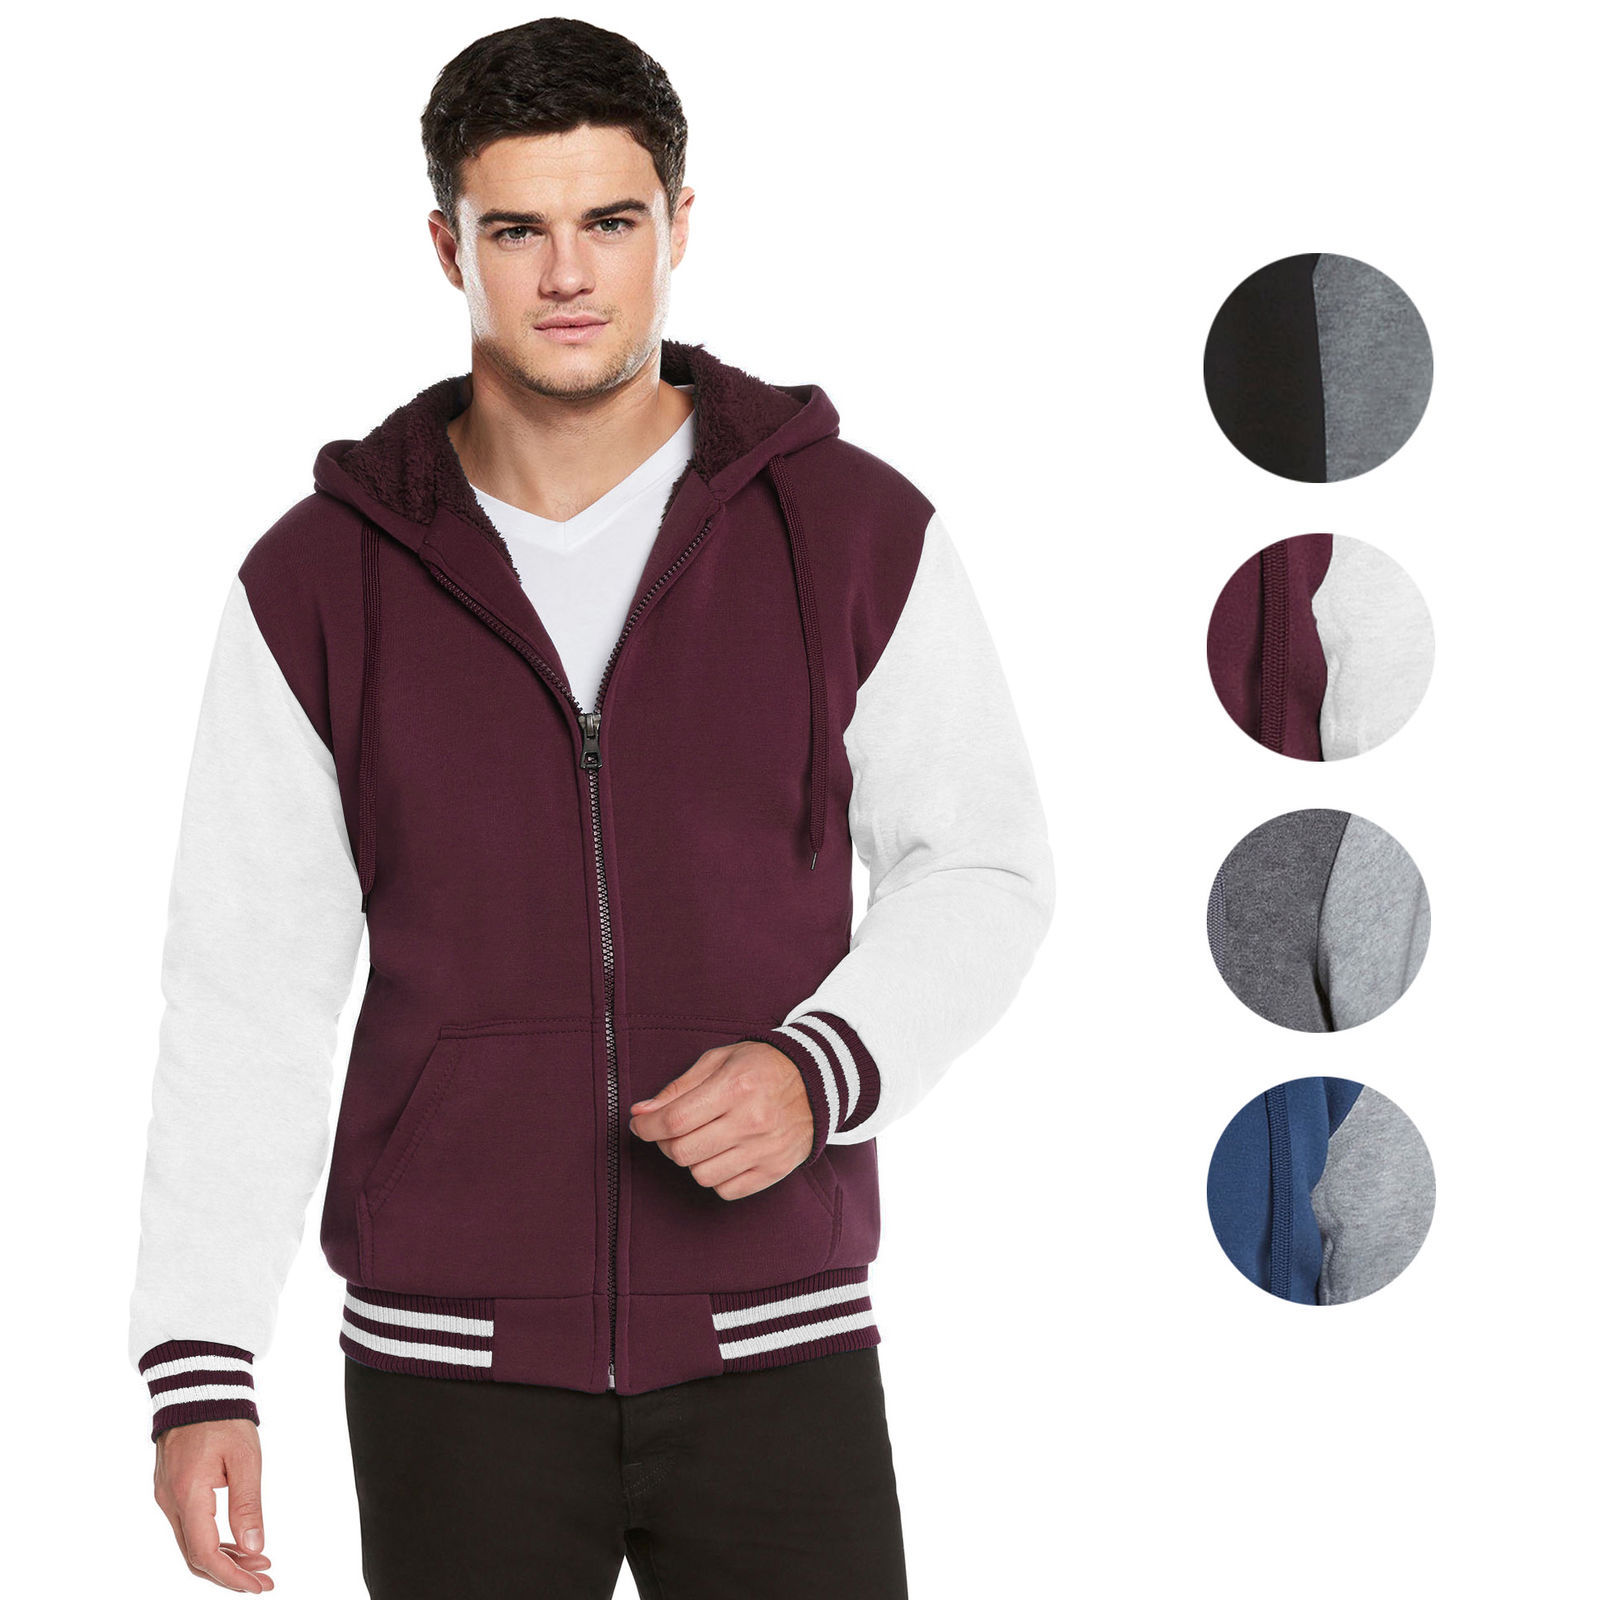 Men's Hooded Sherpa Fleece Lined Varsity Zip Up Two Tone Hoodie Jacket 2-TOON